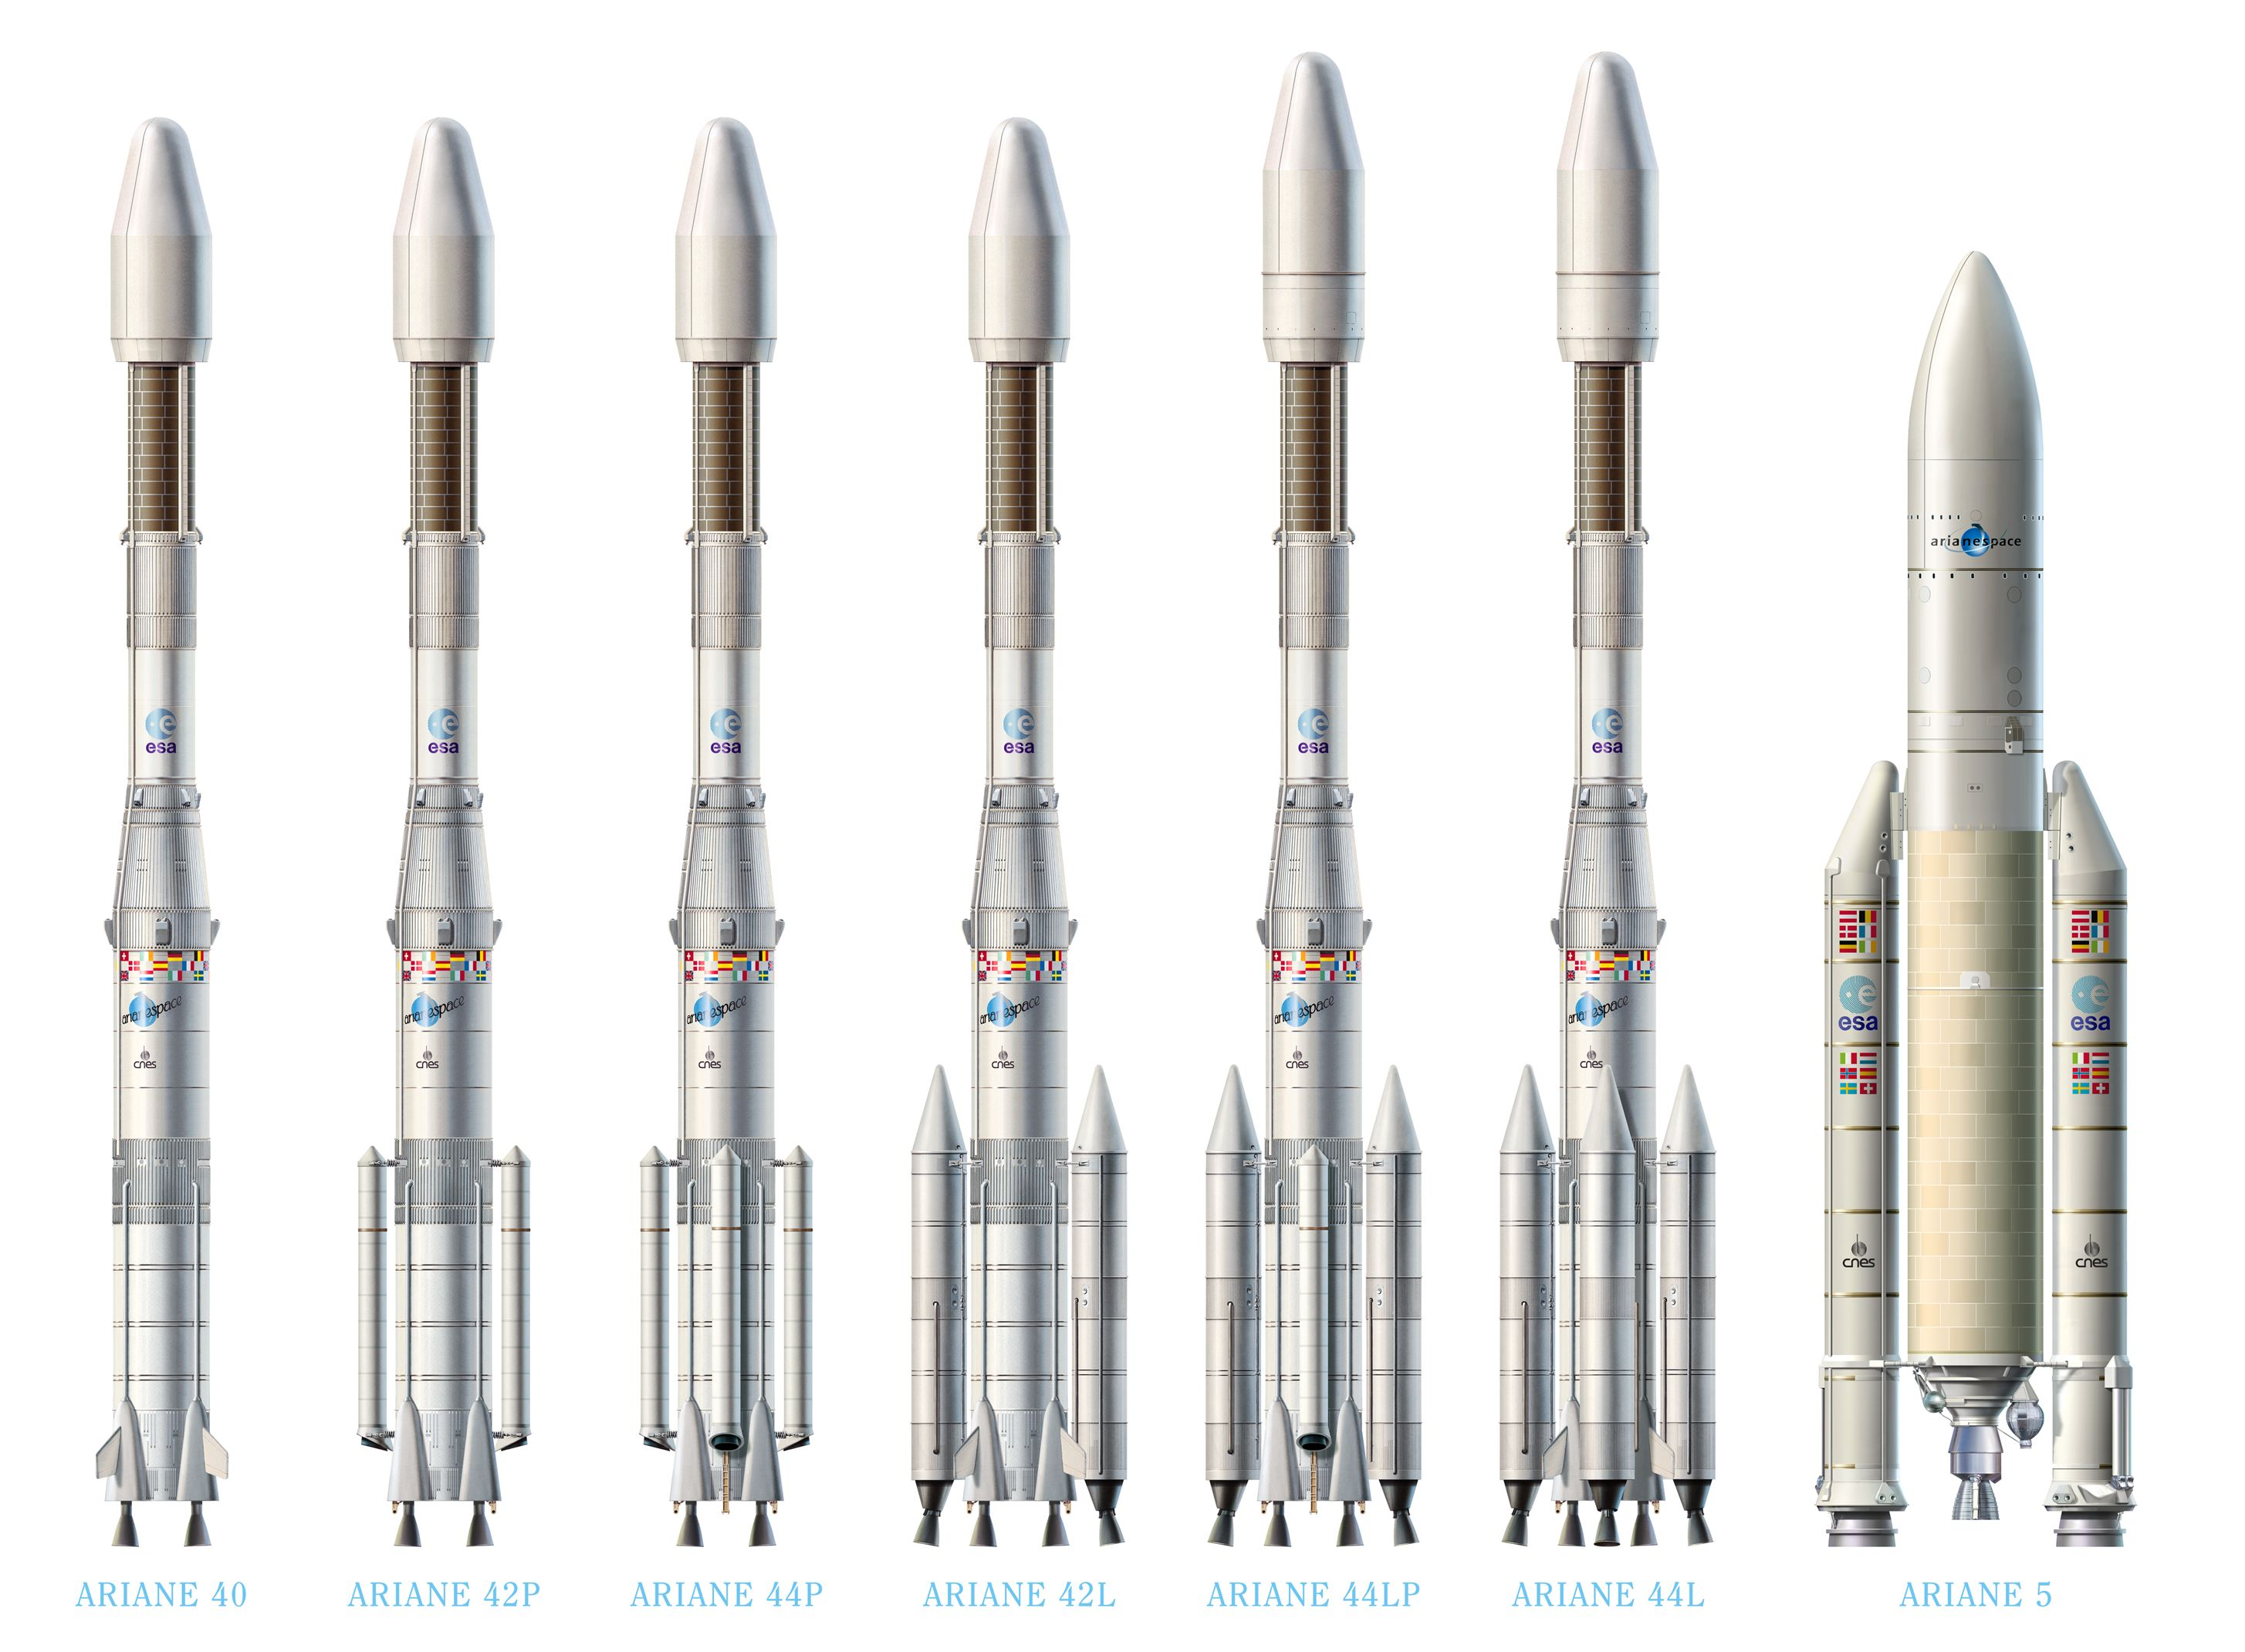 Ariane_4_and_Ariane_5_launchers_artist_view